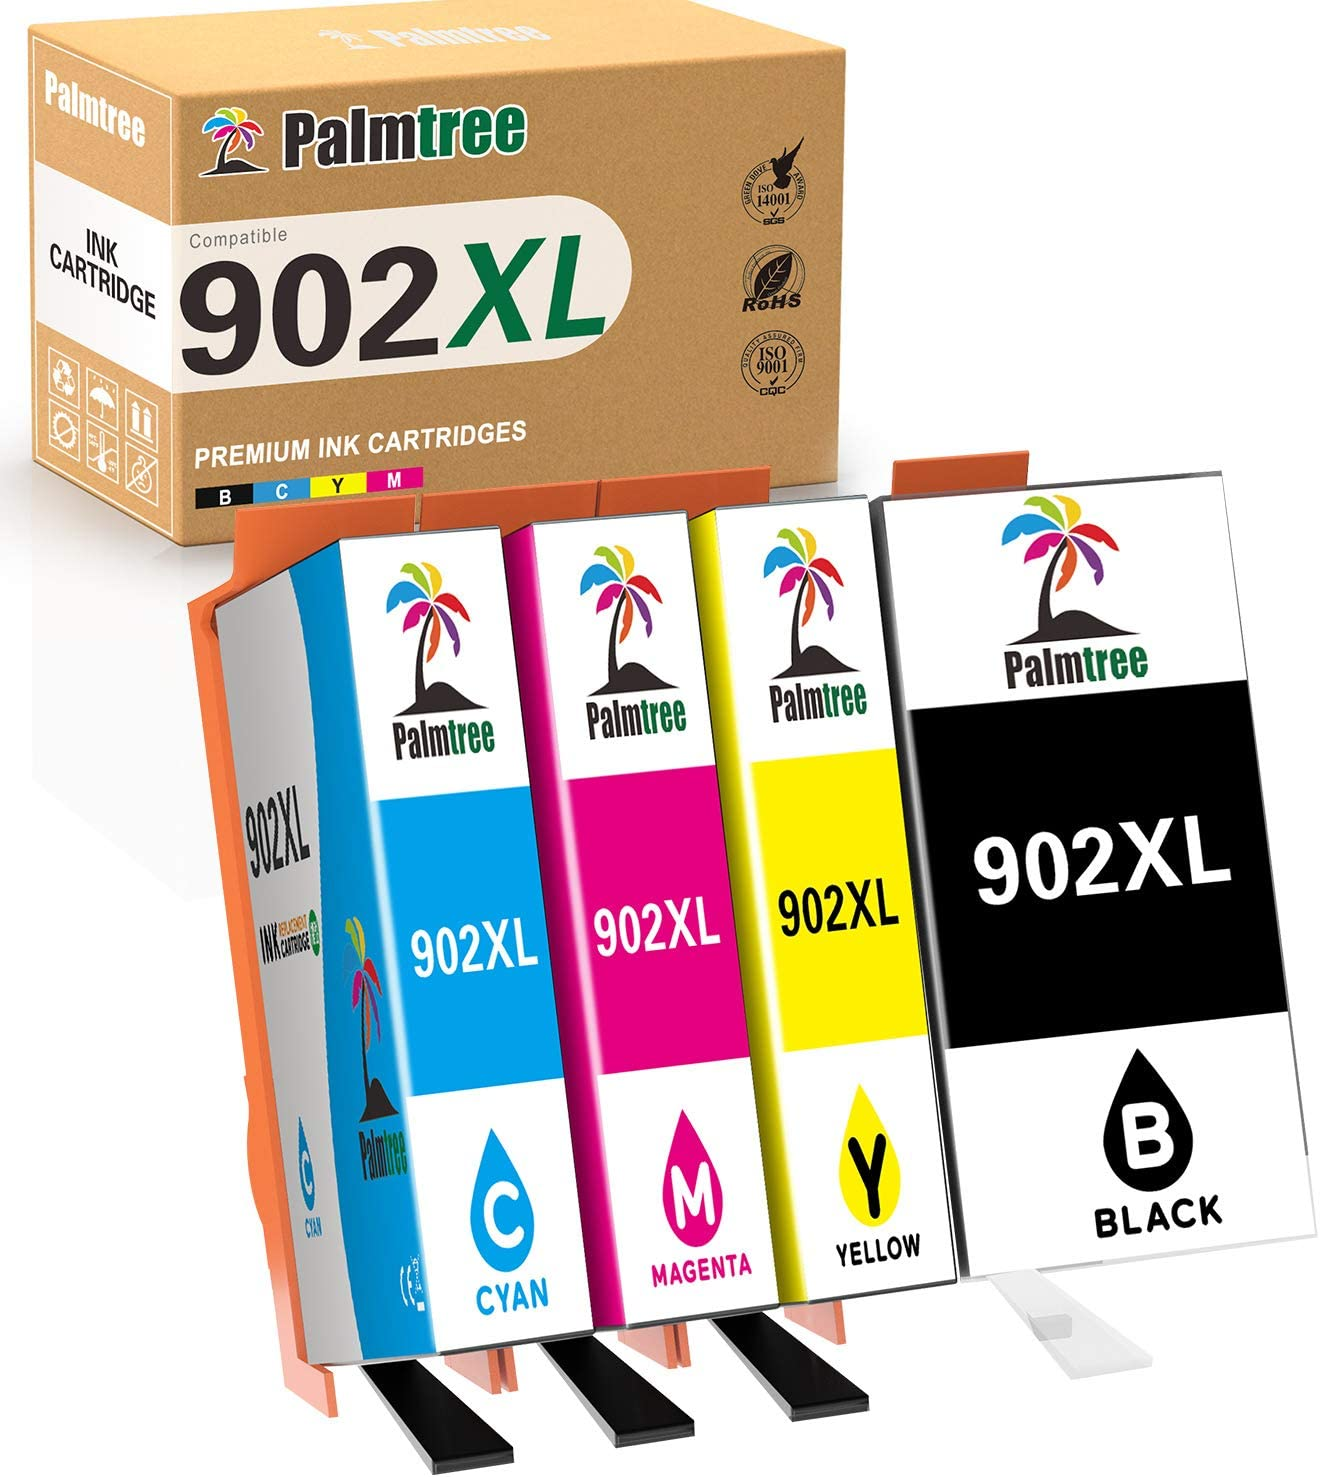 Palmtree Compatible Ink Cartridge Replacement for HP 902XL 902 XL to use with OfficeJet Pro 6968 6978 6958 6962 6954 6960 6970 6979 6950 6975 Printer (Black Yellow Cyan Magenta, 4-Pack)